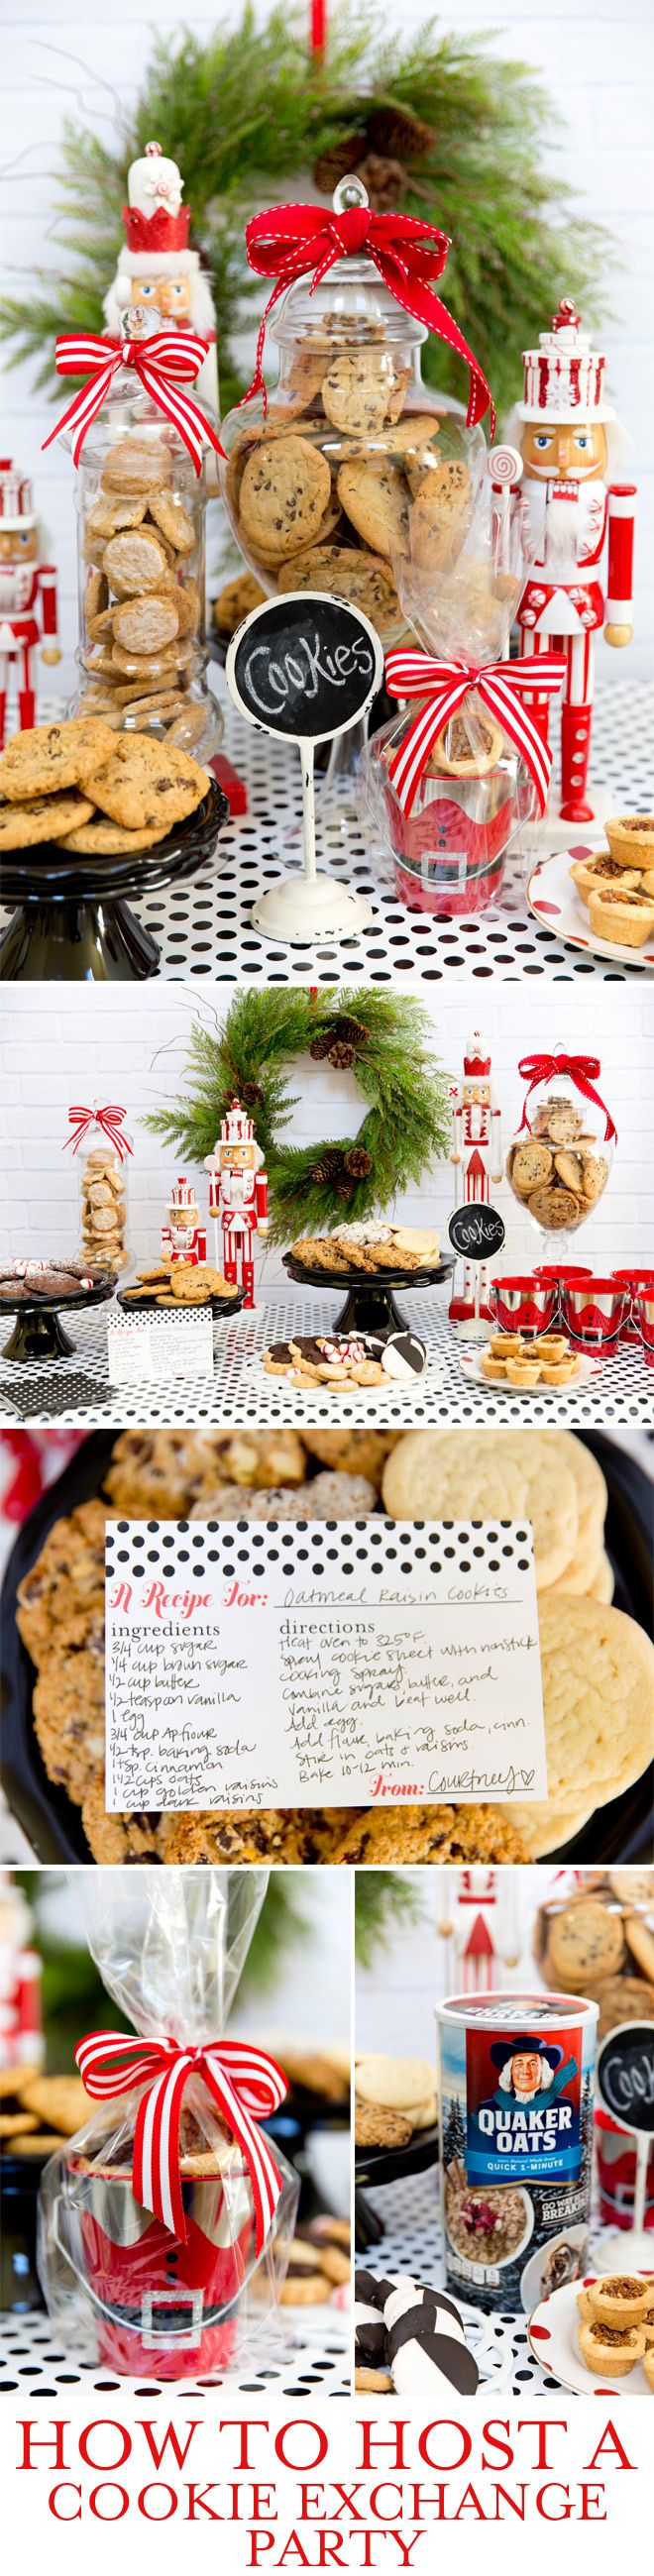 How to Host a Cookie Exchange Party! #MyOatsCreation @spon